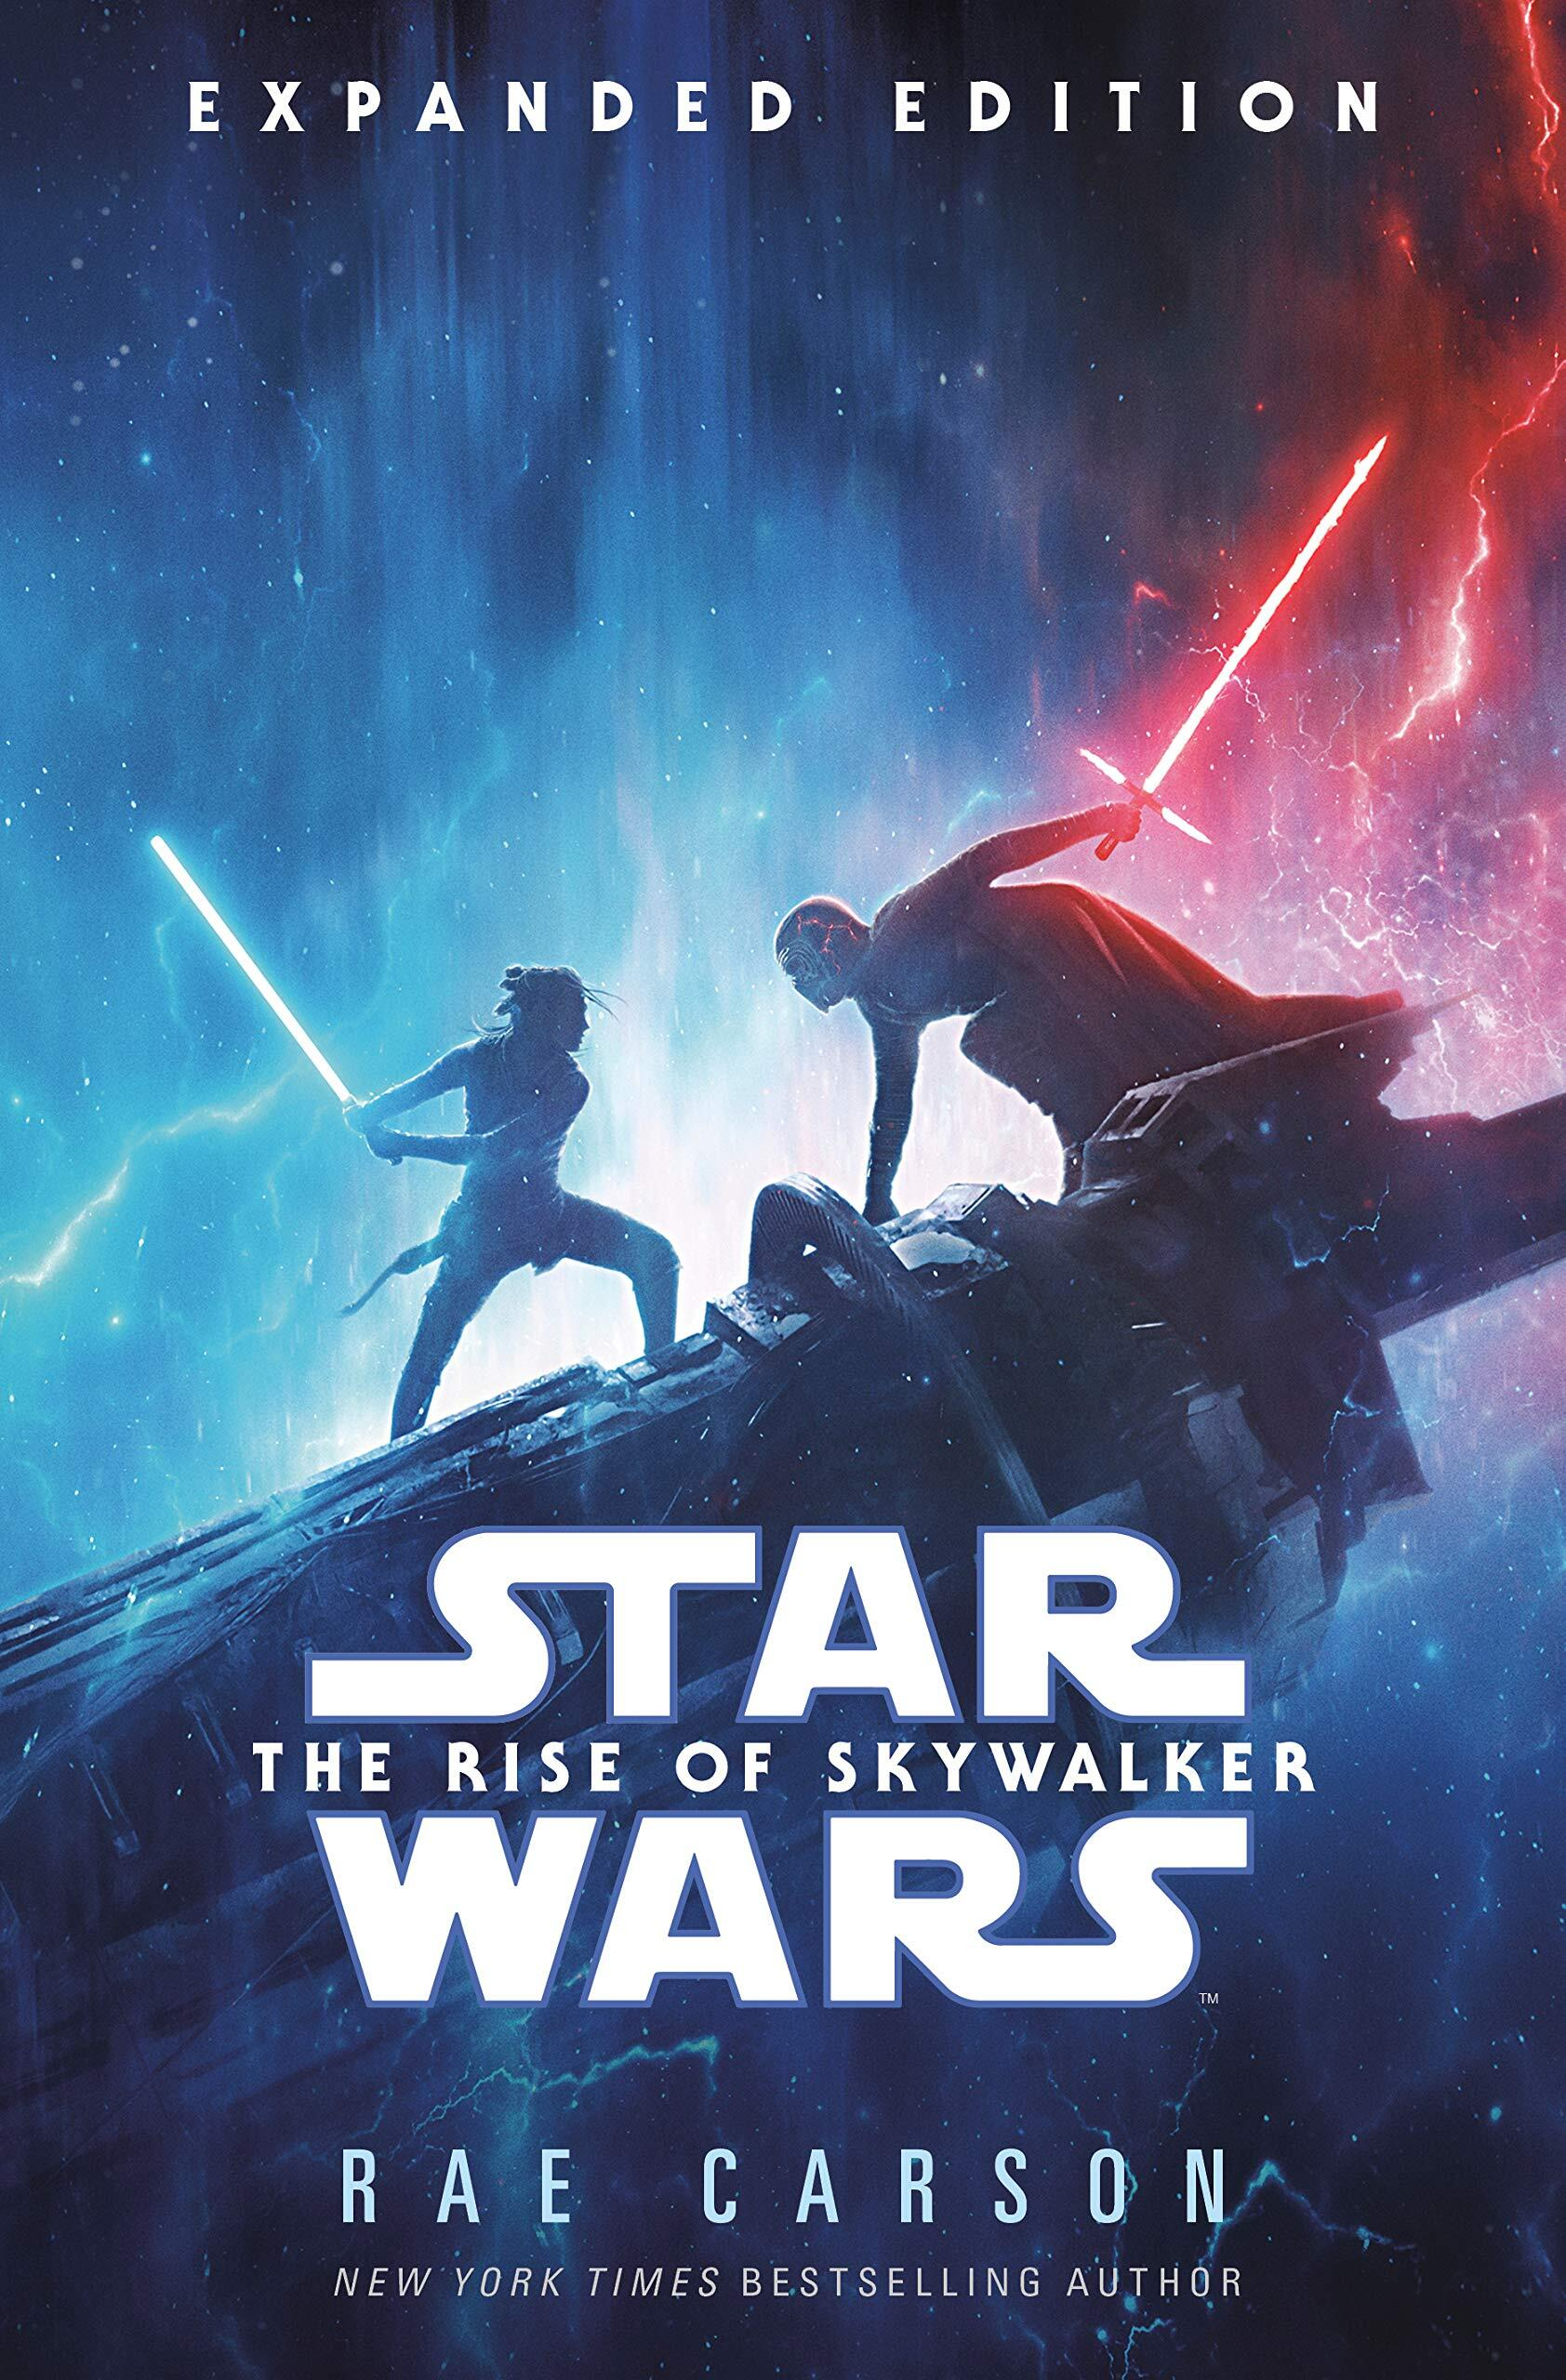 Book cover for the Star Wars: The Rise of Skywalker novelization